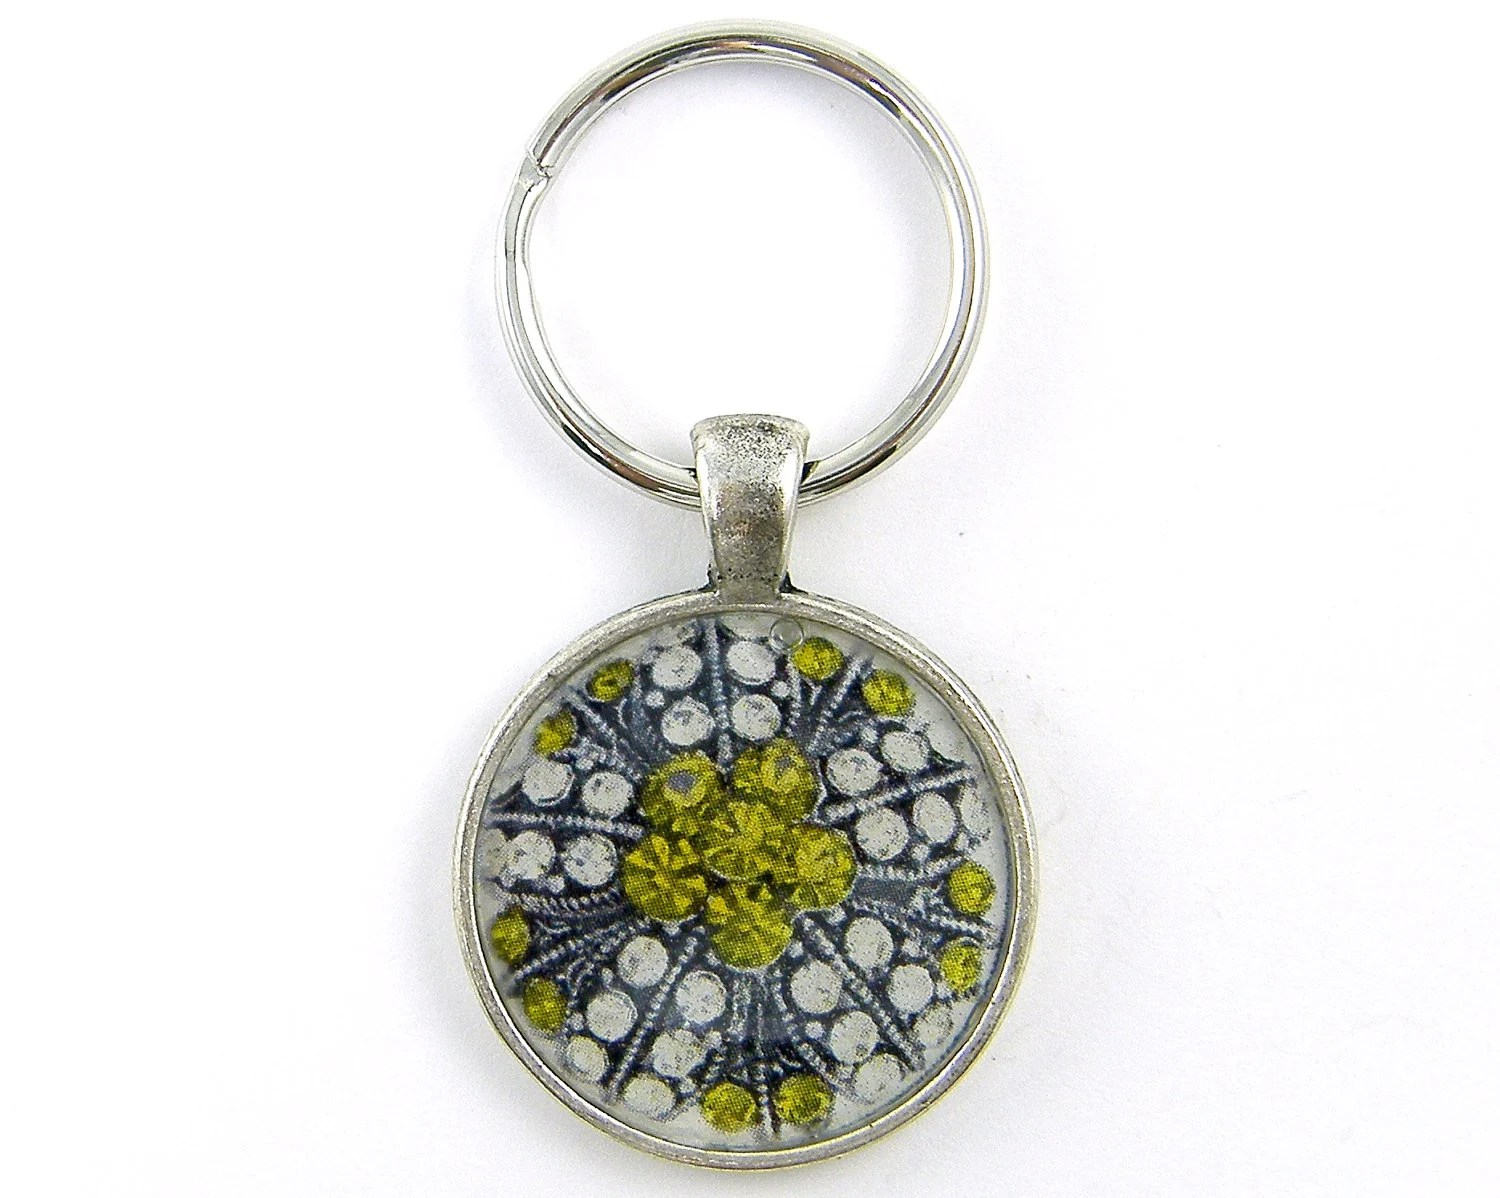 Jewel Keychain - Vintage Brooch Photo White Green Silver Round Resin Metal Key Ring Fob - CharleneSevier